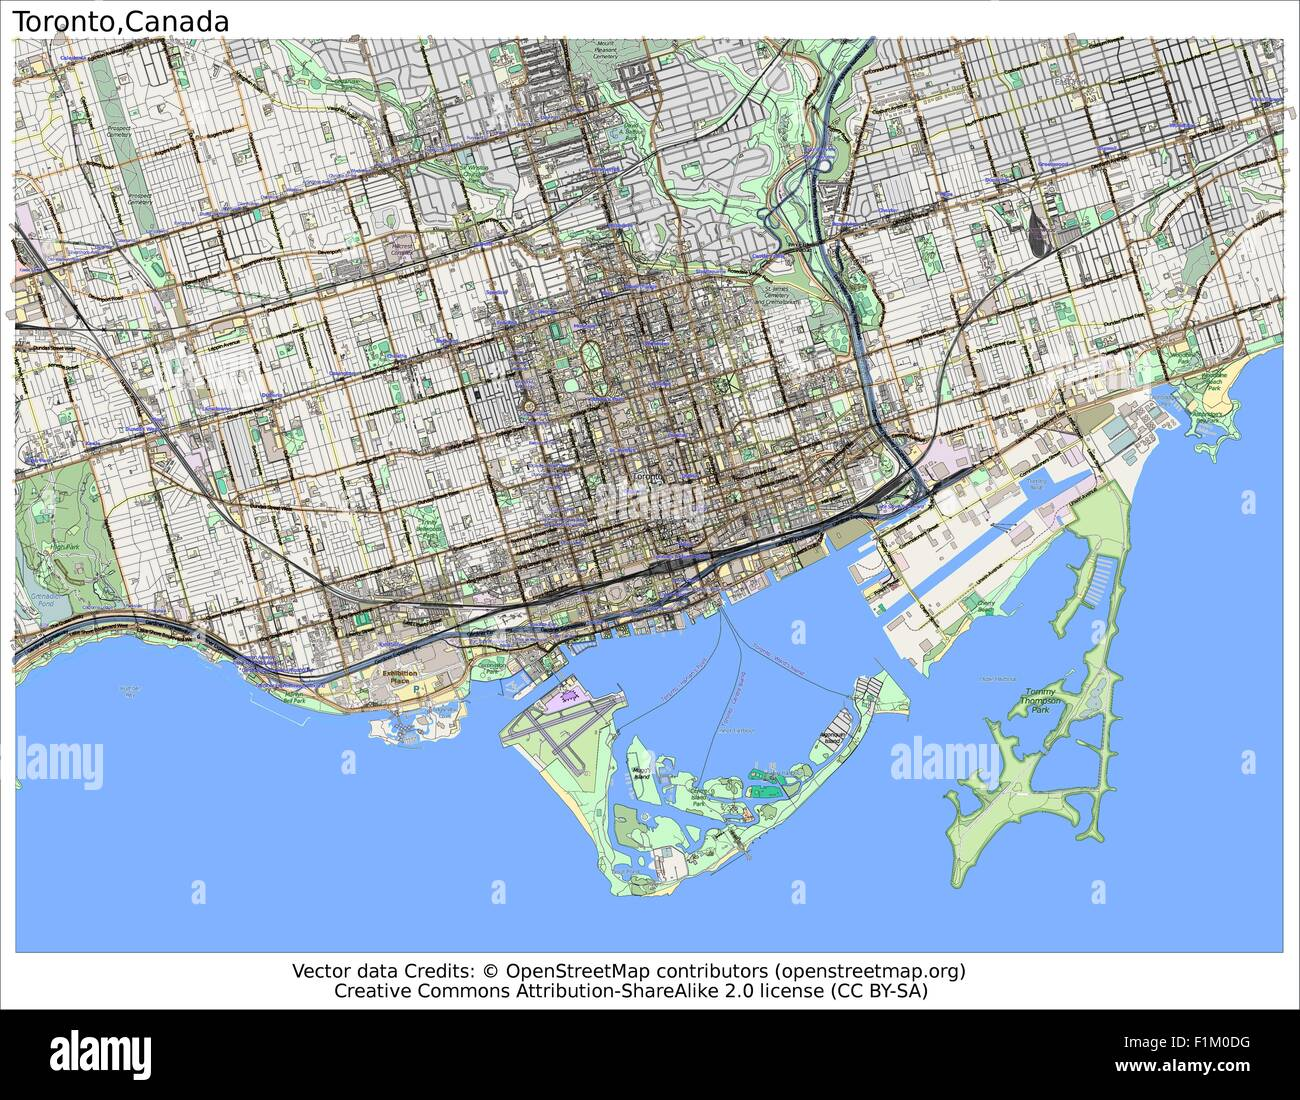 Toronto Canada map aerial view Stock Vector Art ...